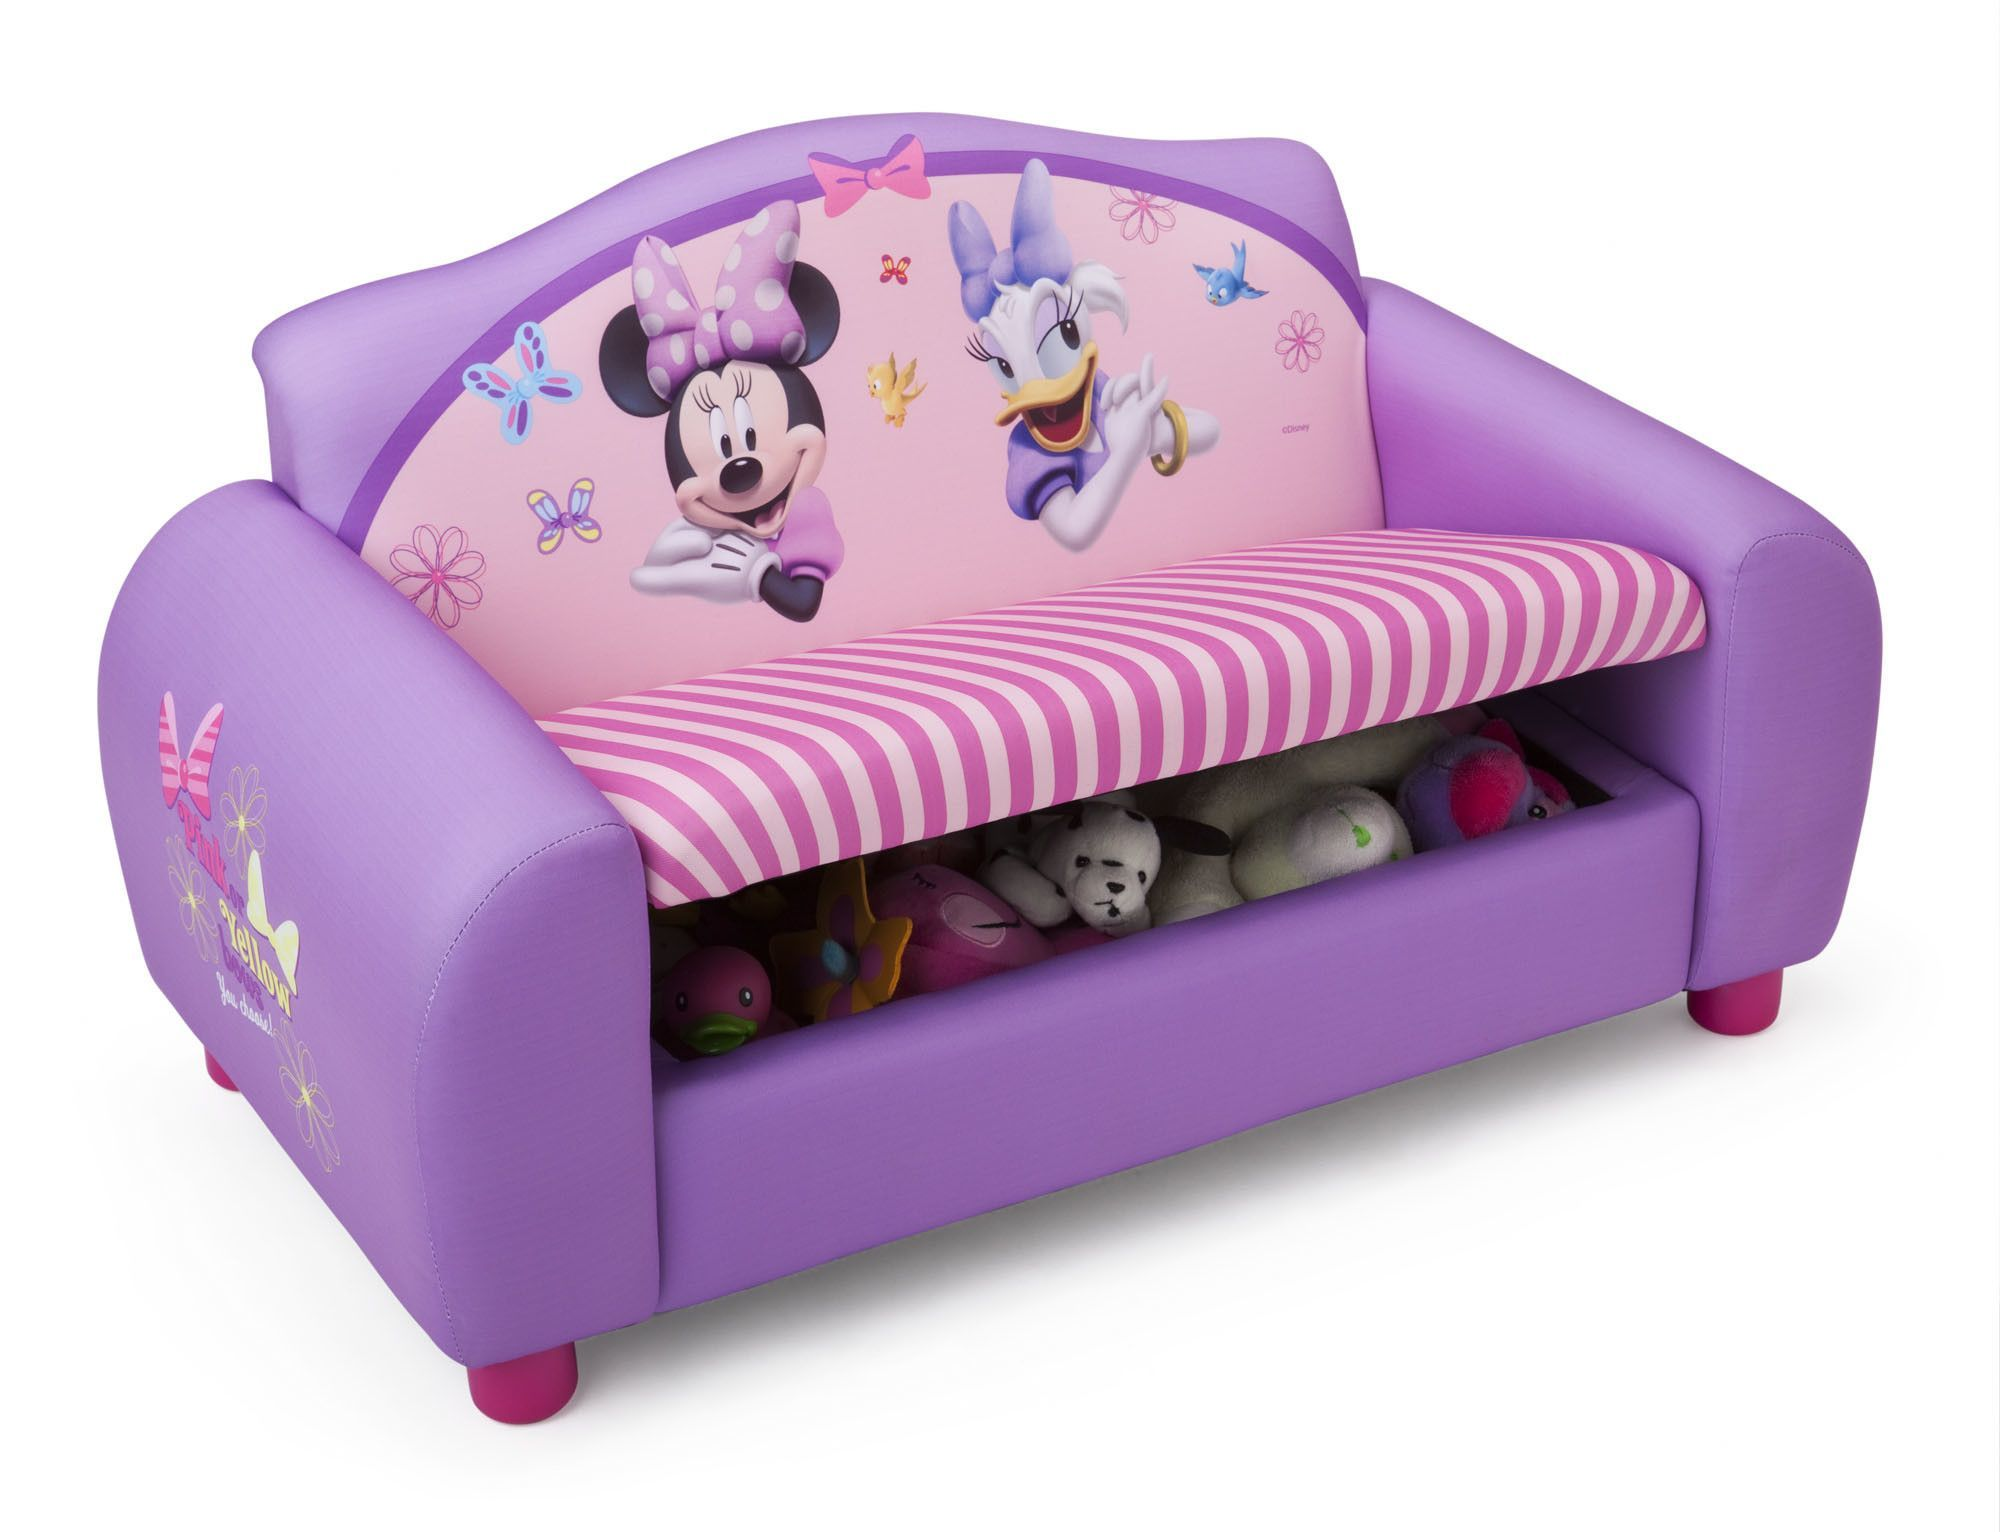 Disney Minnie Mouse Kids Storage Sofa In Purple